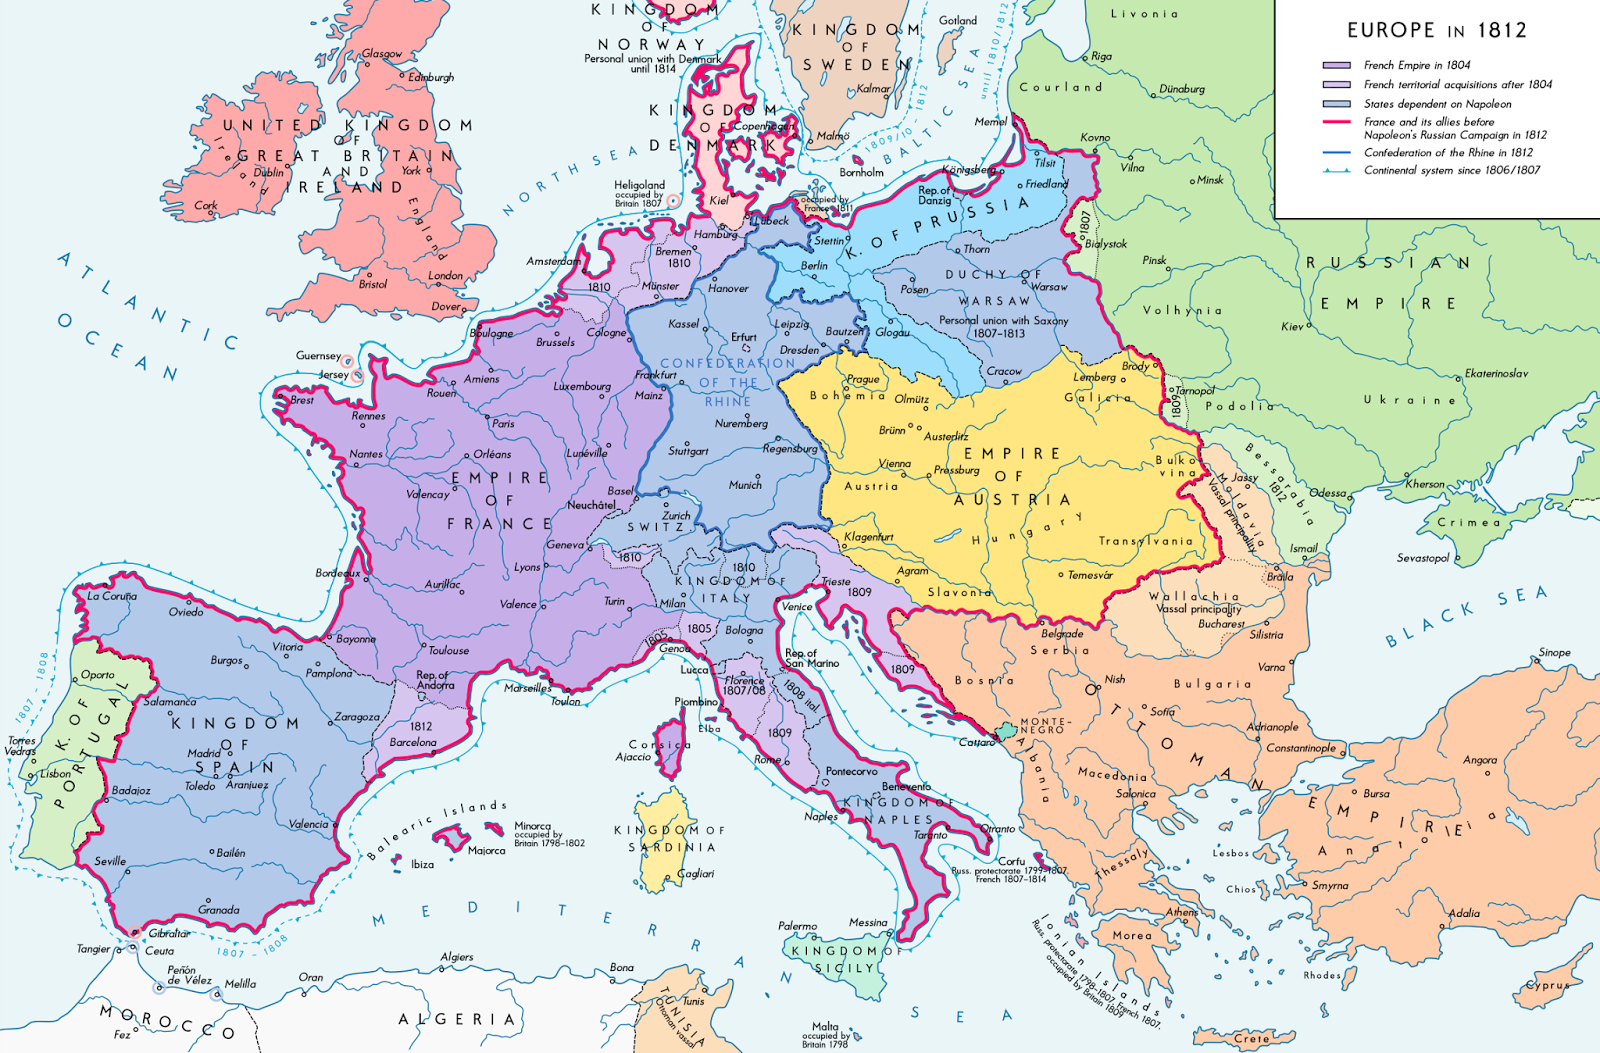 europe in 1812 allies of napoleon are show with red border source